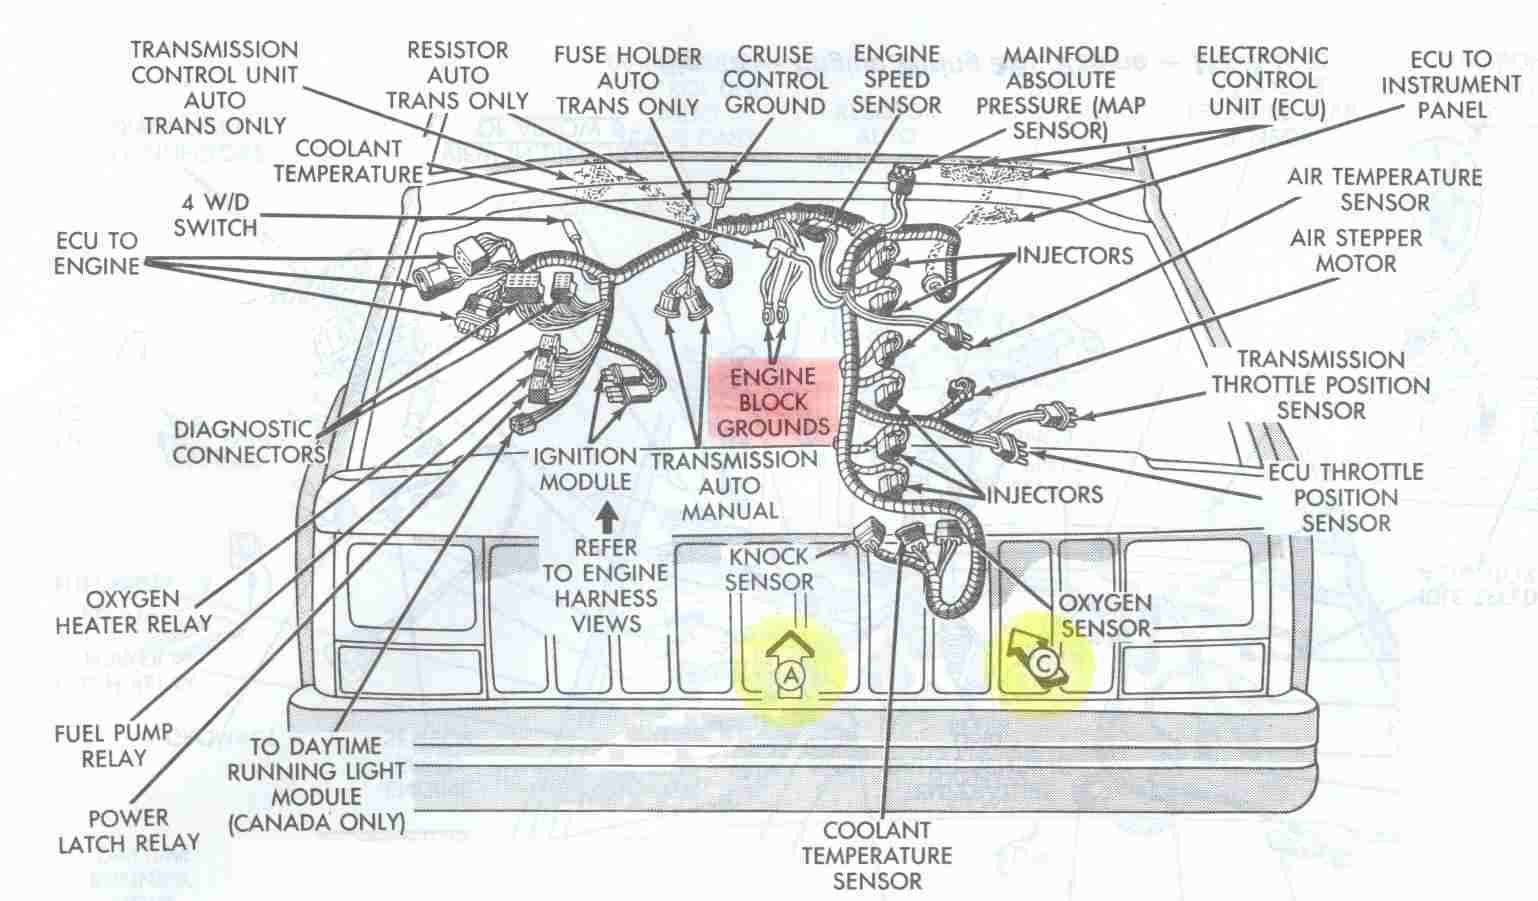 ab0134a7d9e021431187af597eb4aeca engine bay schematic showing major electrical ground points for 1998 jeep cherokee wiring diagram at readyjetset.co